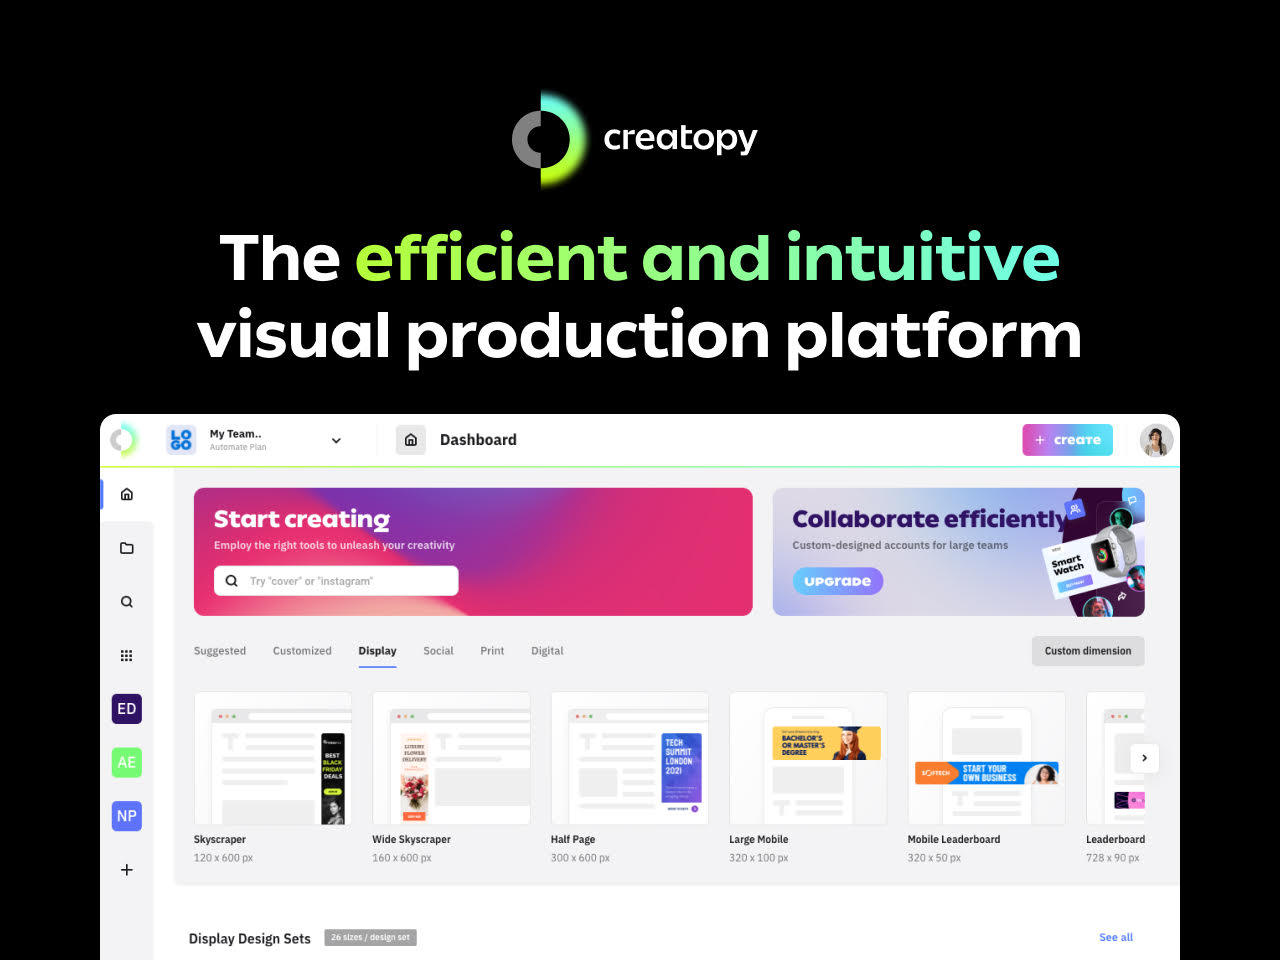 Creatopy is an efficient and intuitive visual production platform